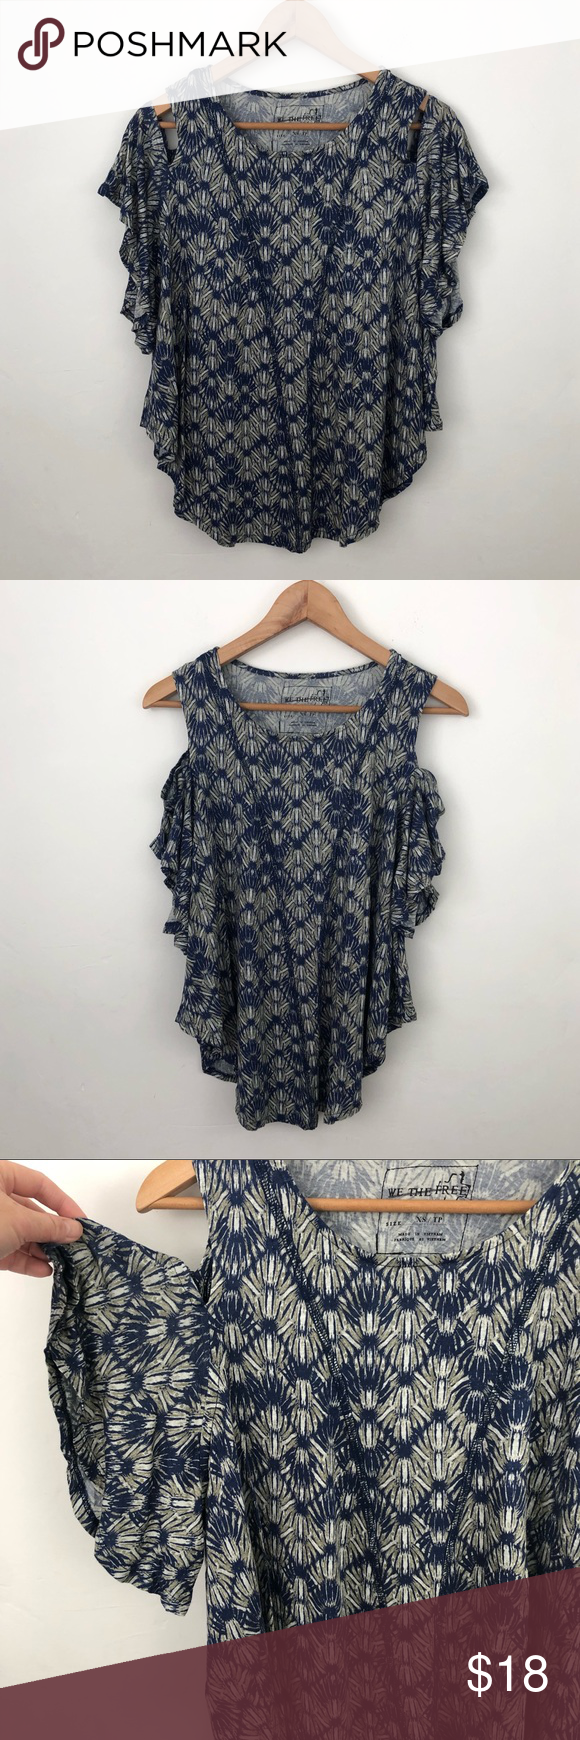 64d01dce96c99a Free People Printed Cold Shoulder Top Free People We the Free Printed Blue Cold  Shoulder Top Size XS Approximate measurements (laying flat): - Pit to pit:  ...